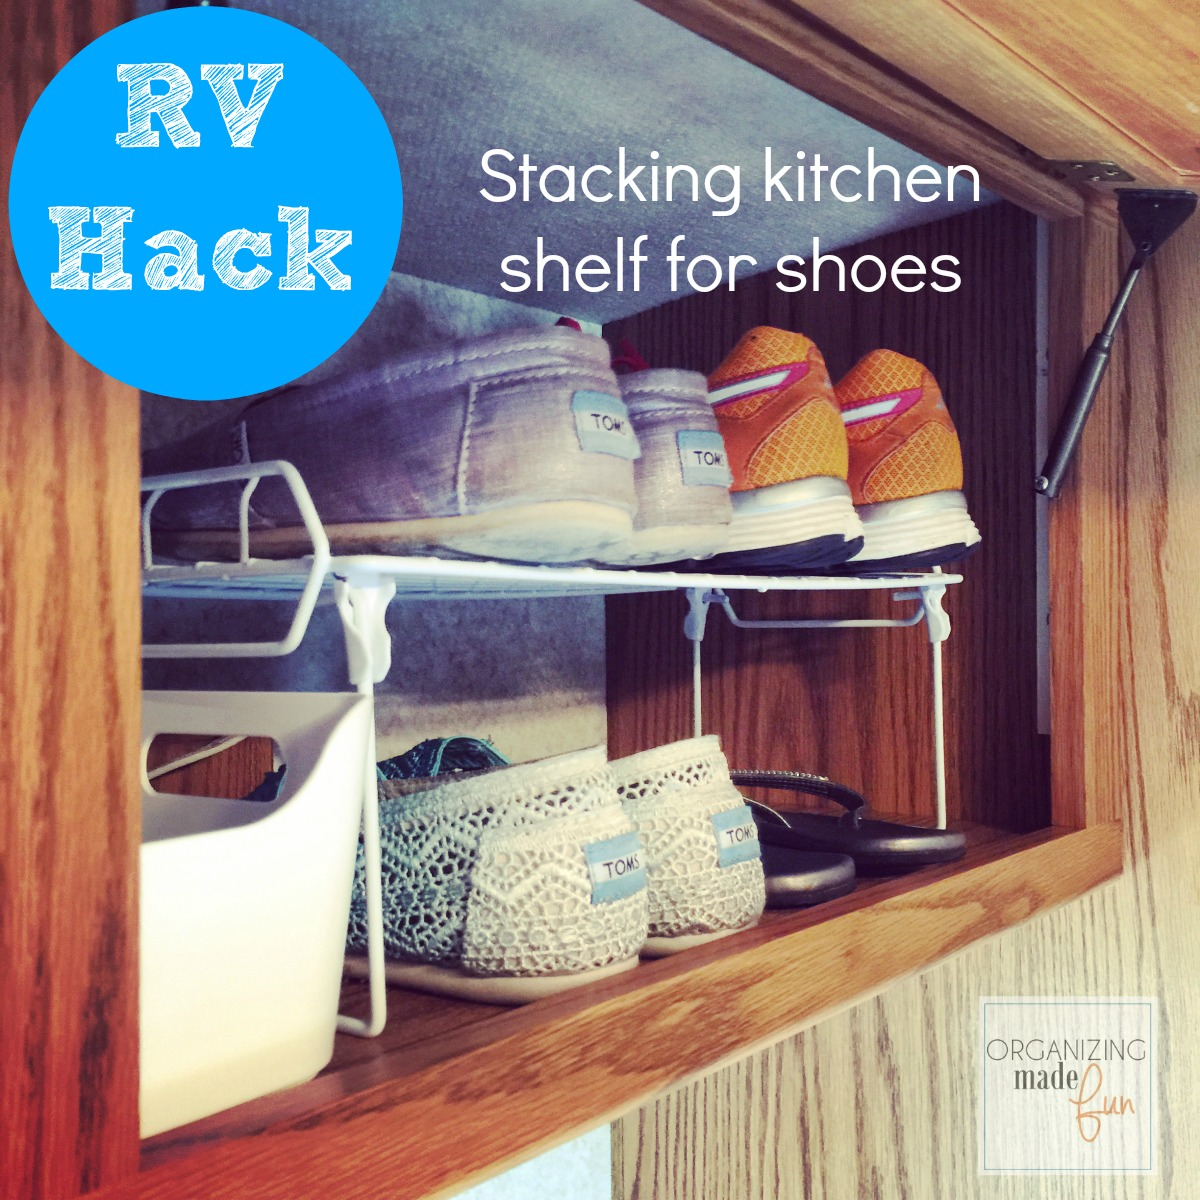 rv organizing and storage hacks small rv kitchen cabinets RV Hack use kitchen stack shelves for shoe space OrganizingMadeFun com